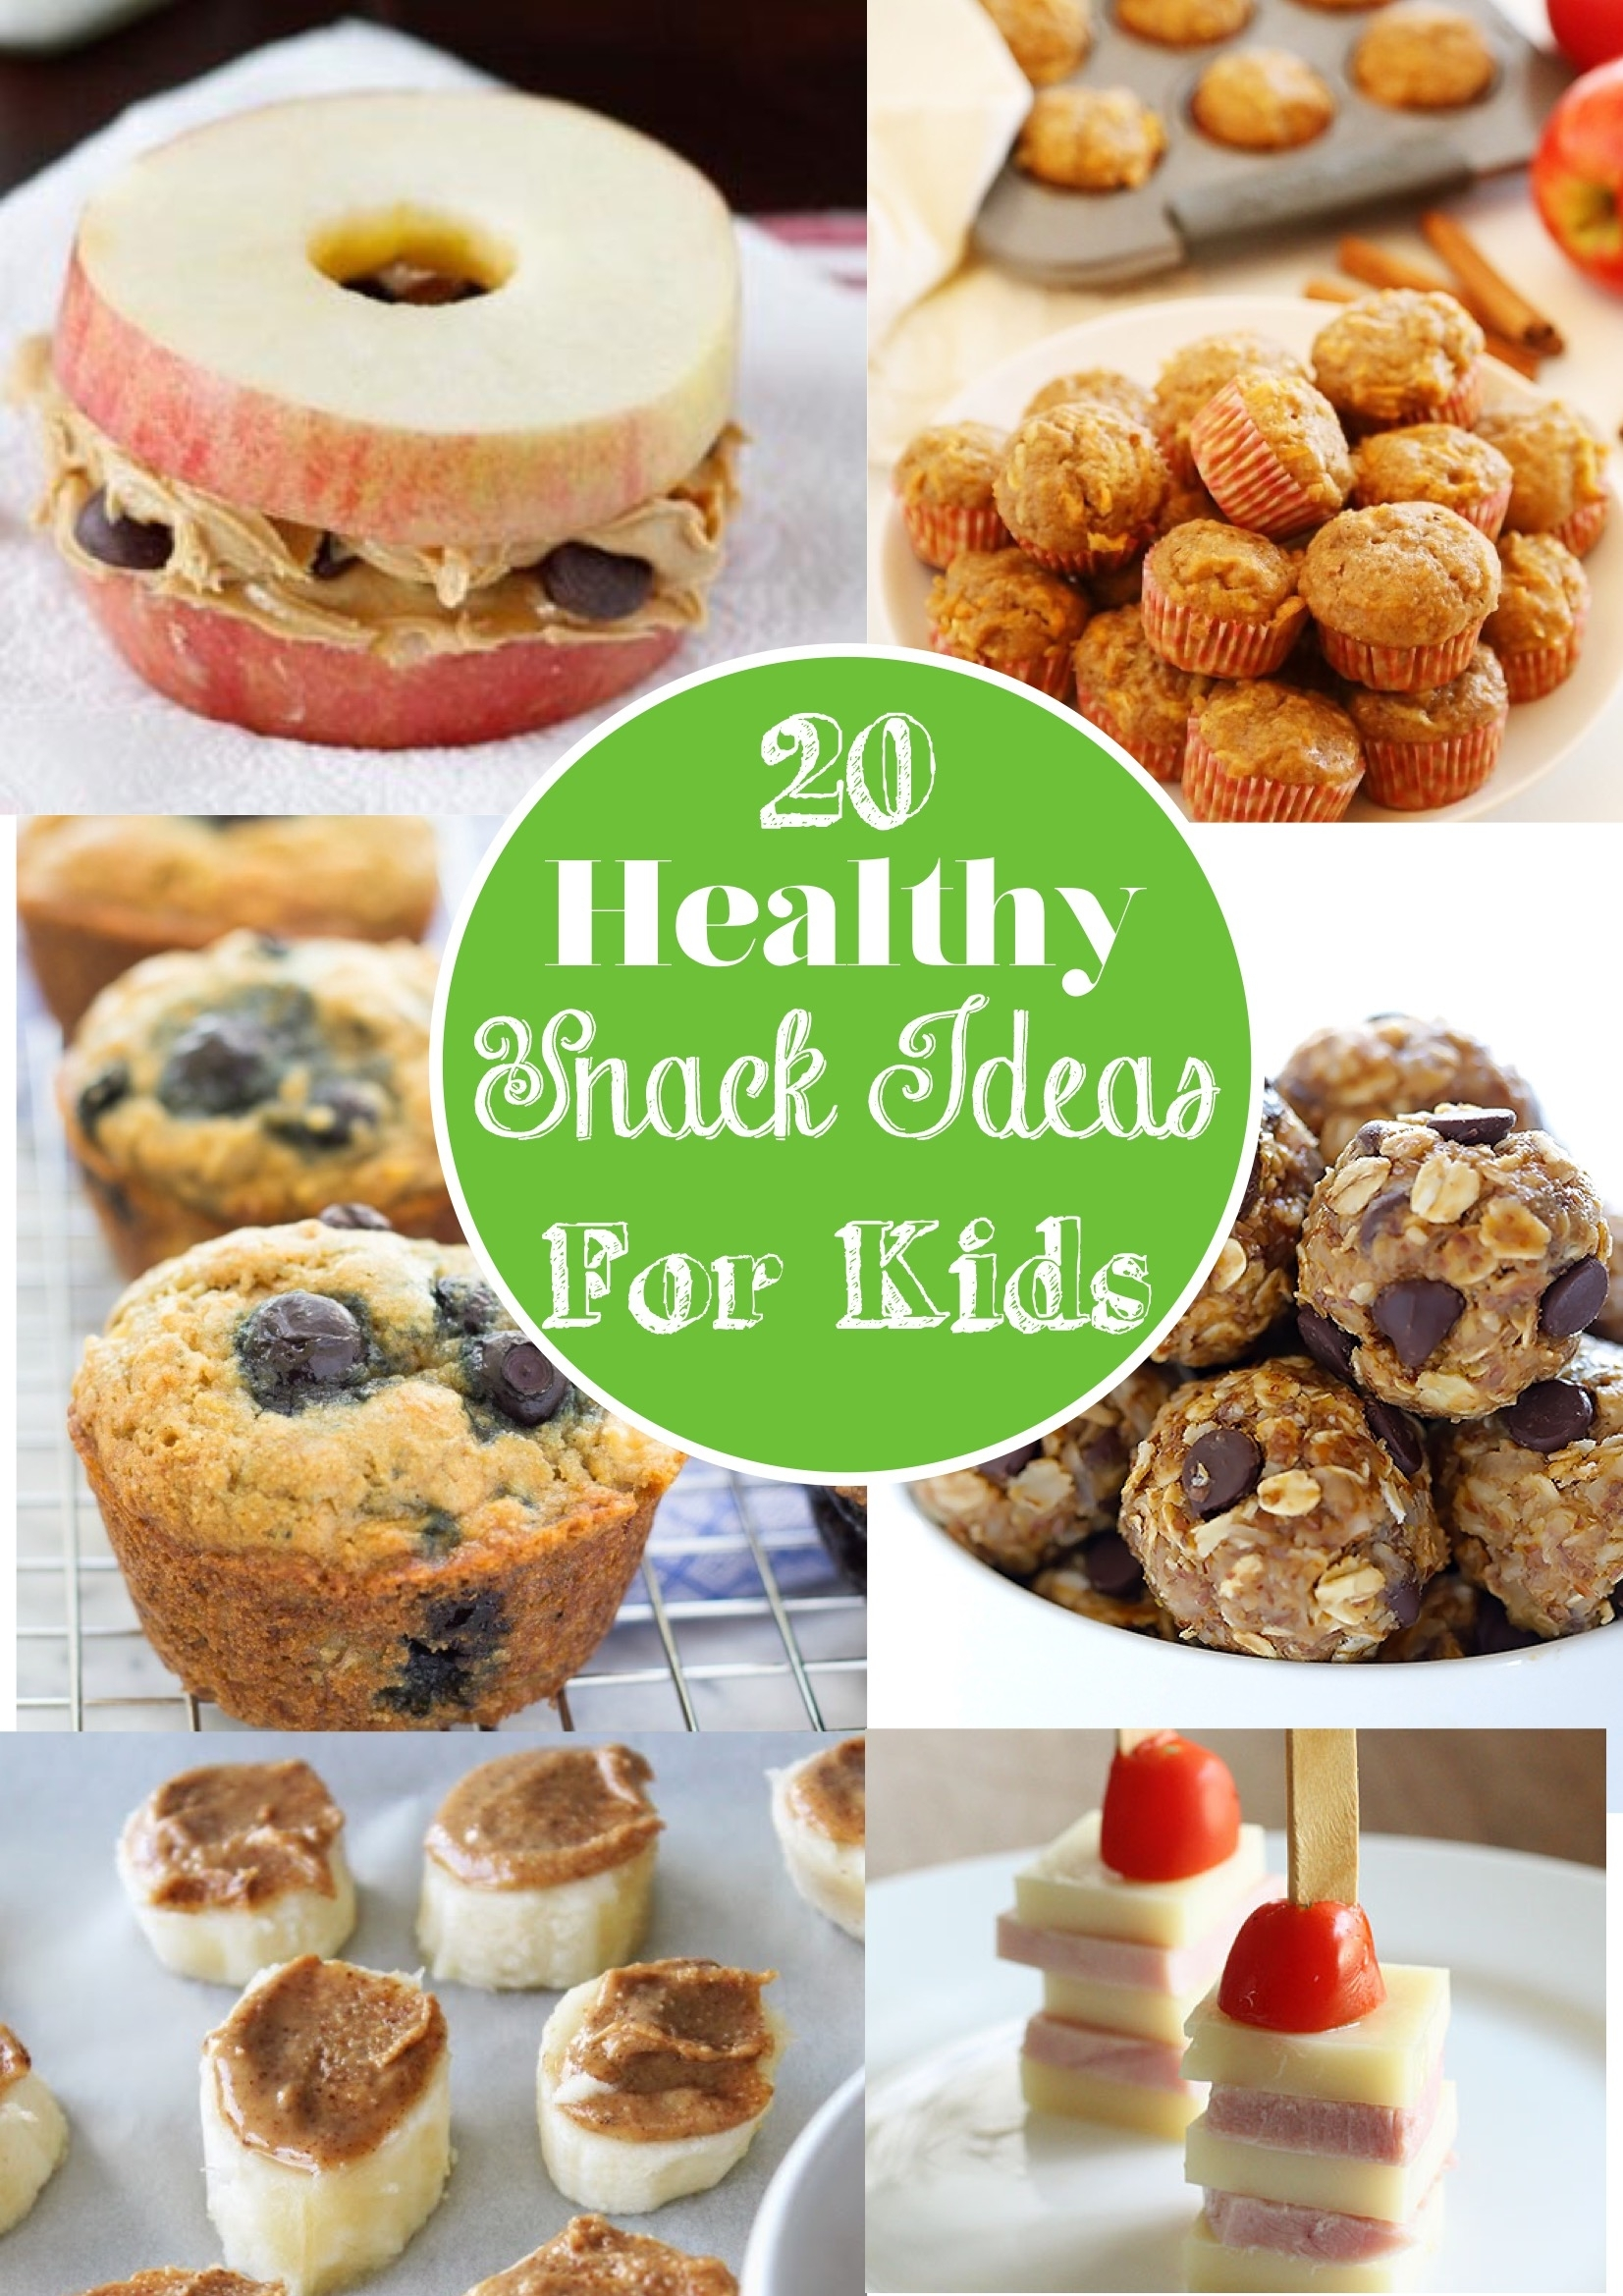 20 healthy snack ideas for kids - snack smart!